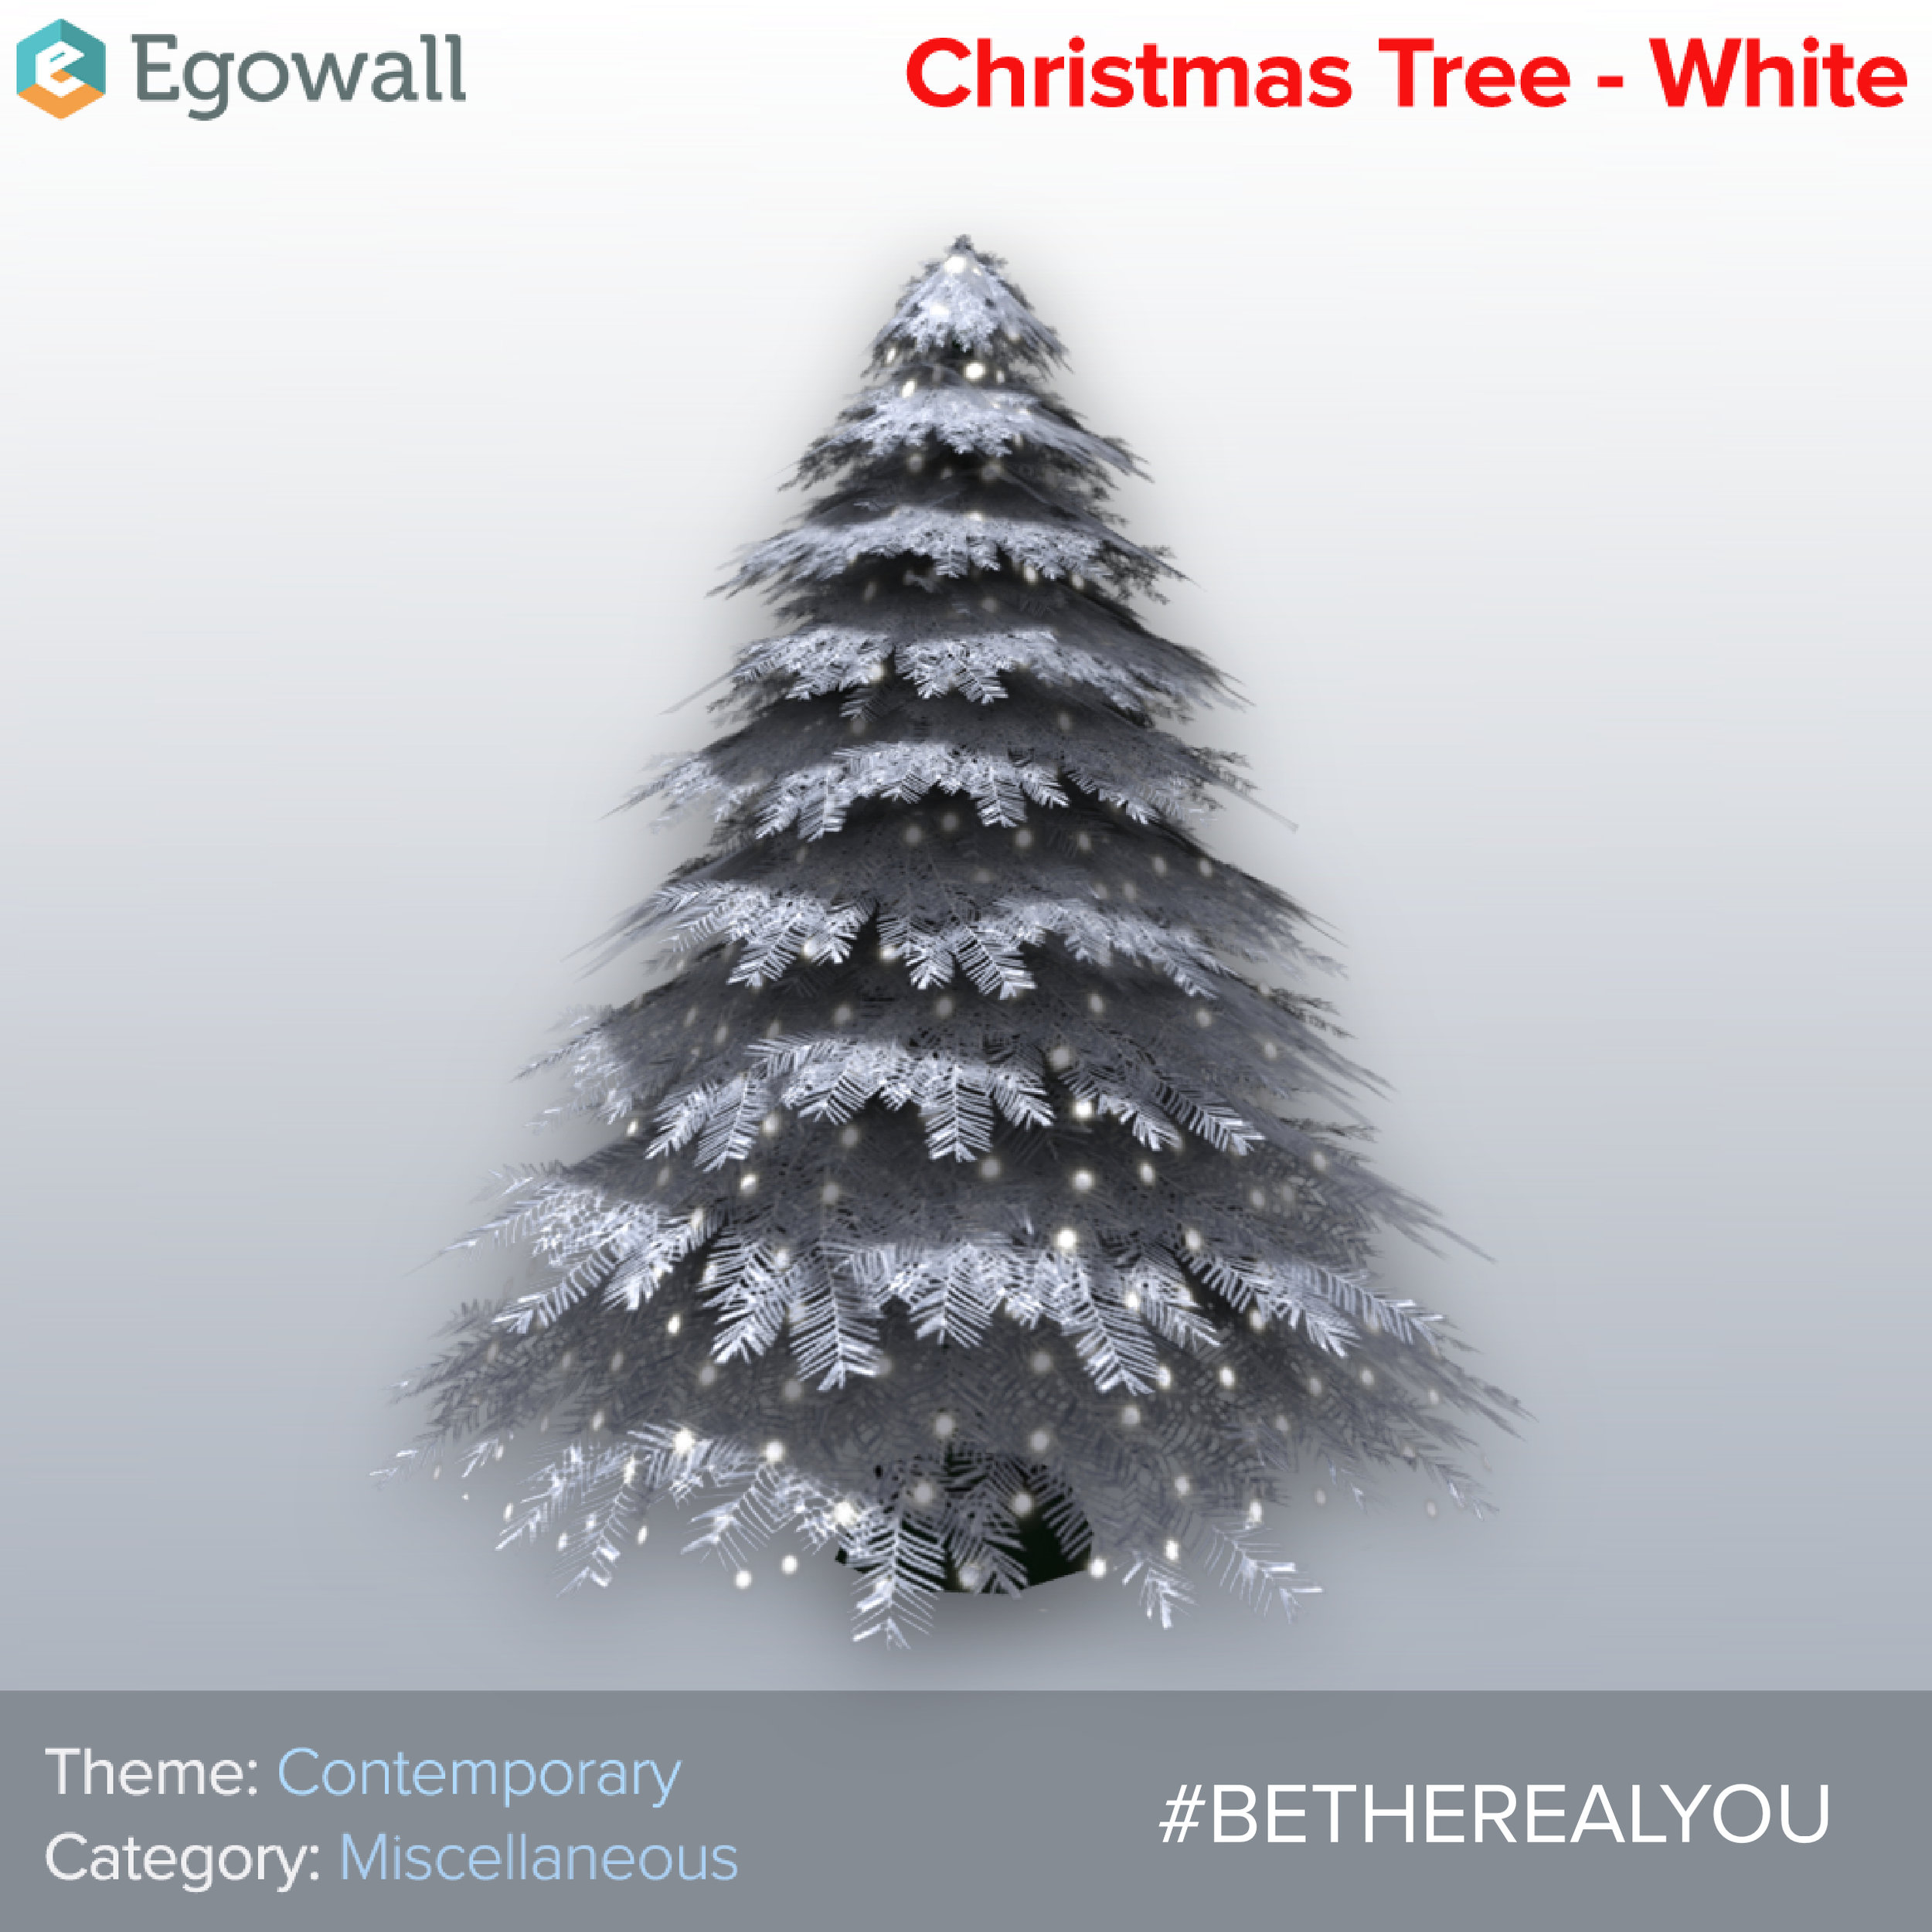 Christmas Tree - White.Instagram.jpg